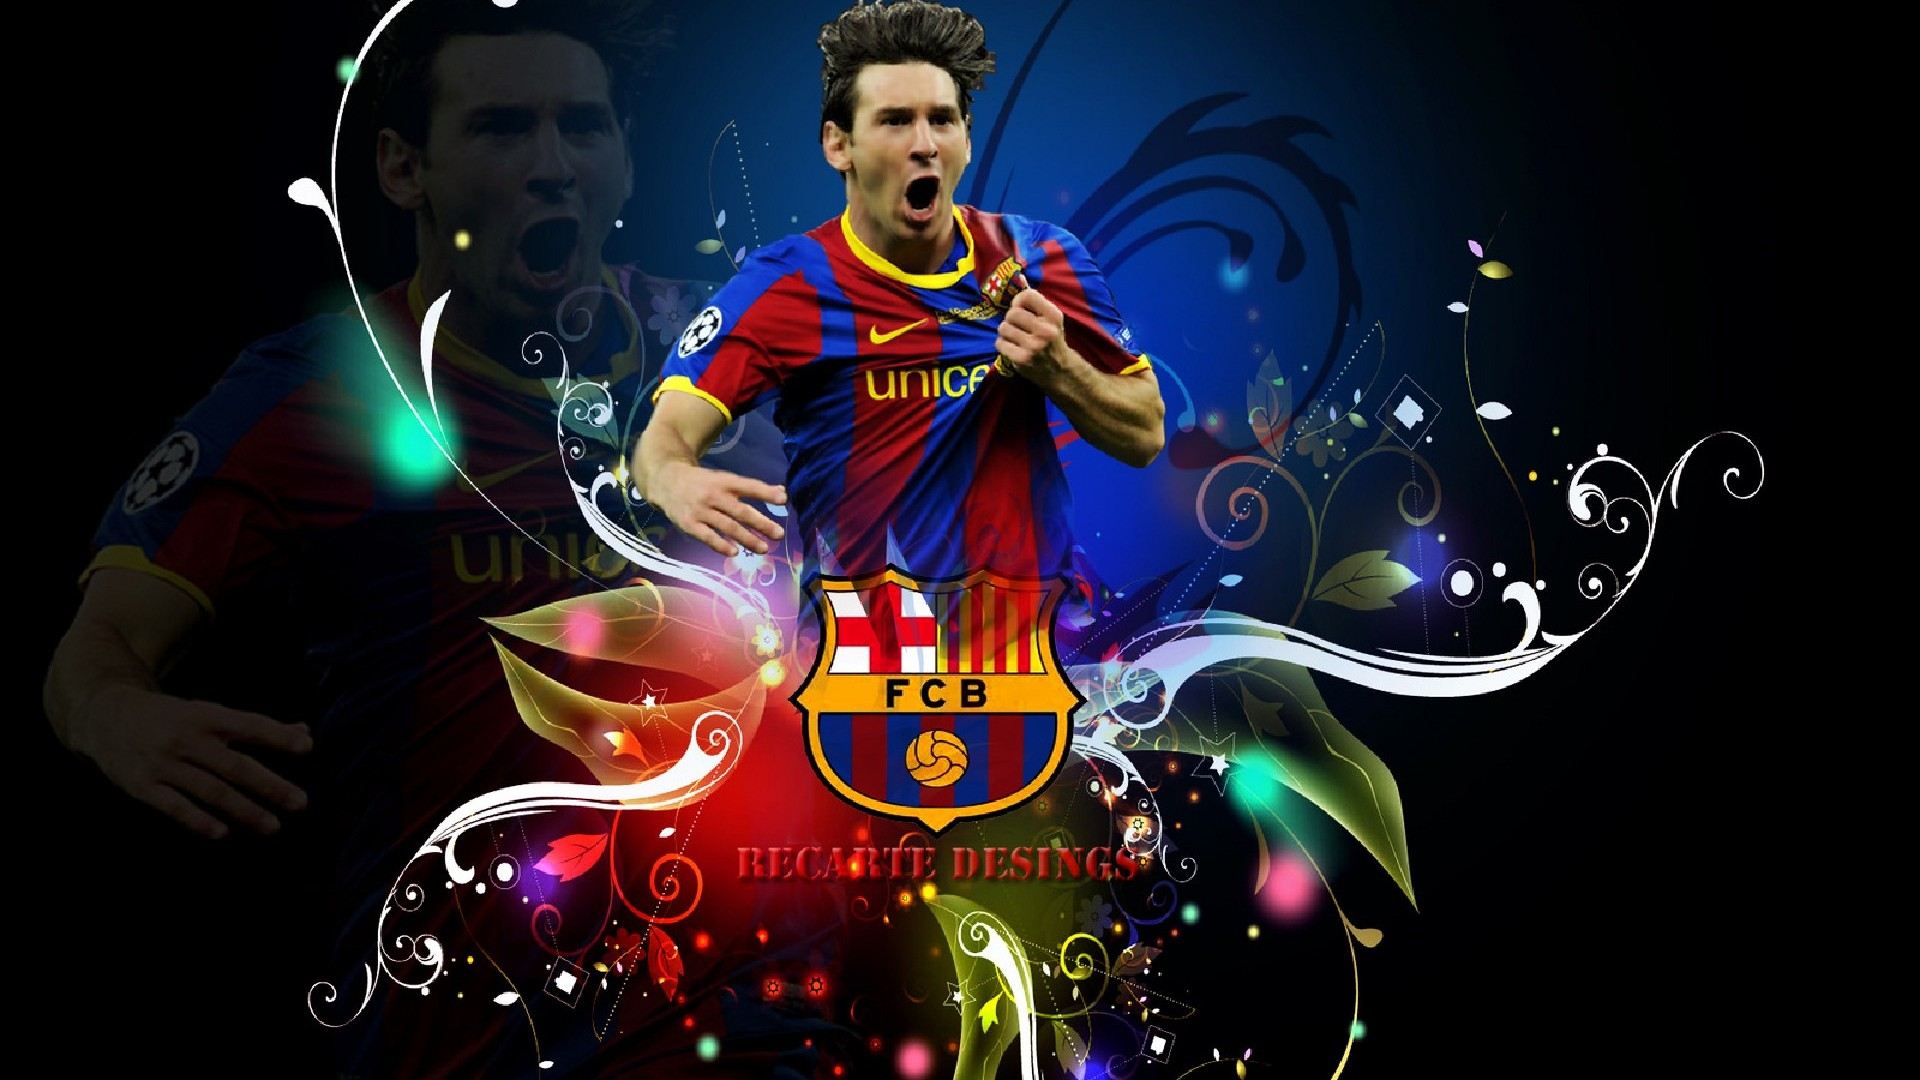 Lionel messi hd wallpaper free download lionel messi hd wallpaper voltagebd Choice Image